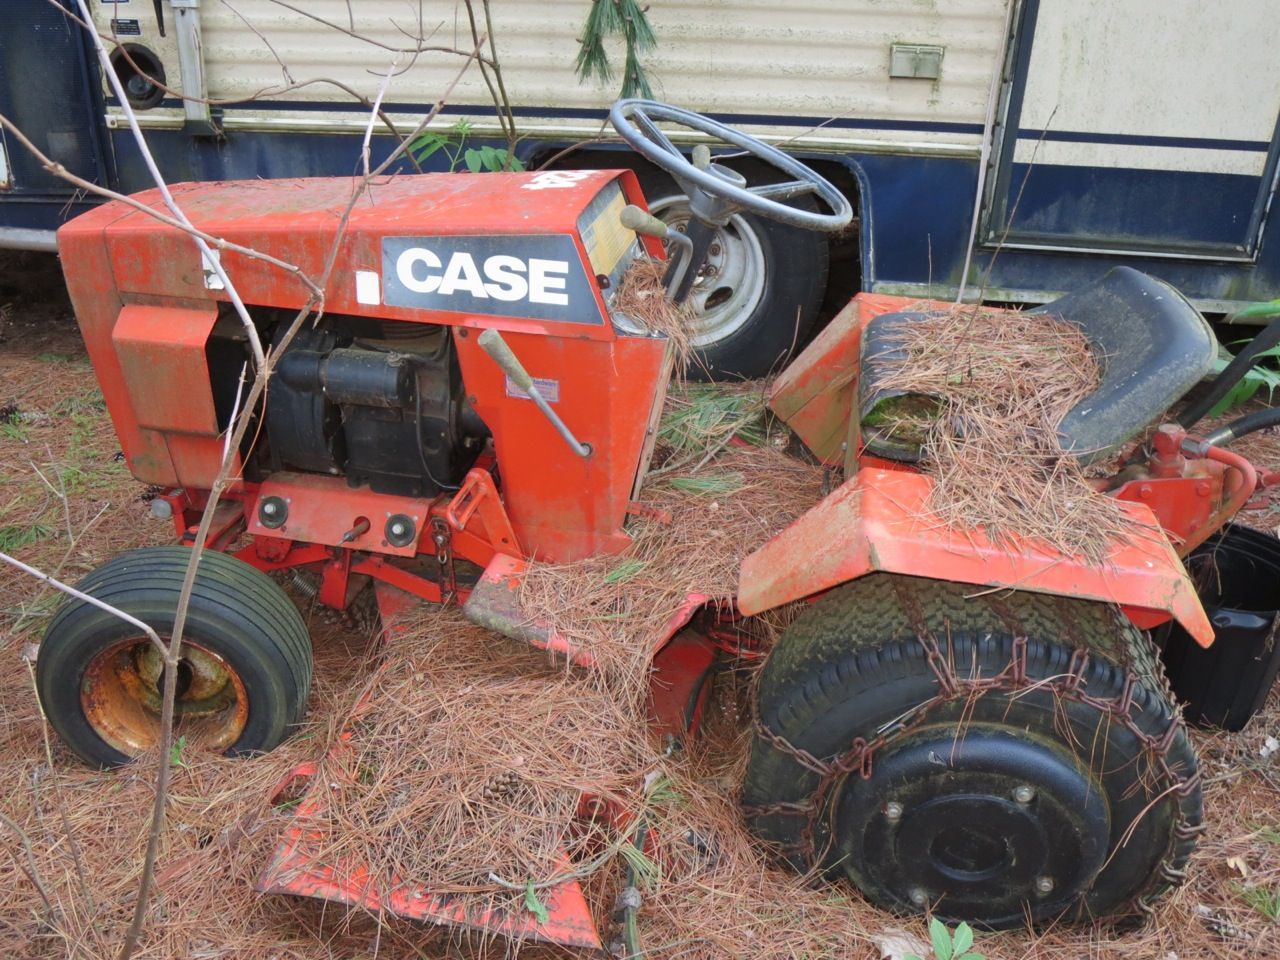 Case 224 Lawn Tractor With Tiller Attachments 300 All Not